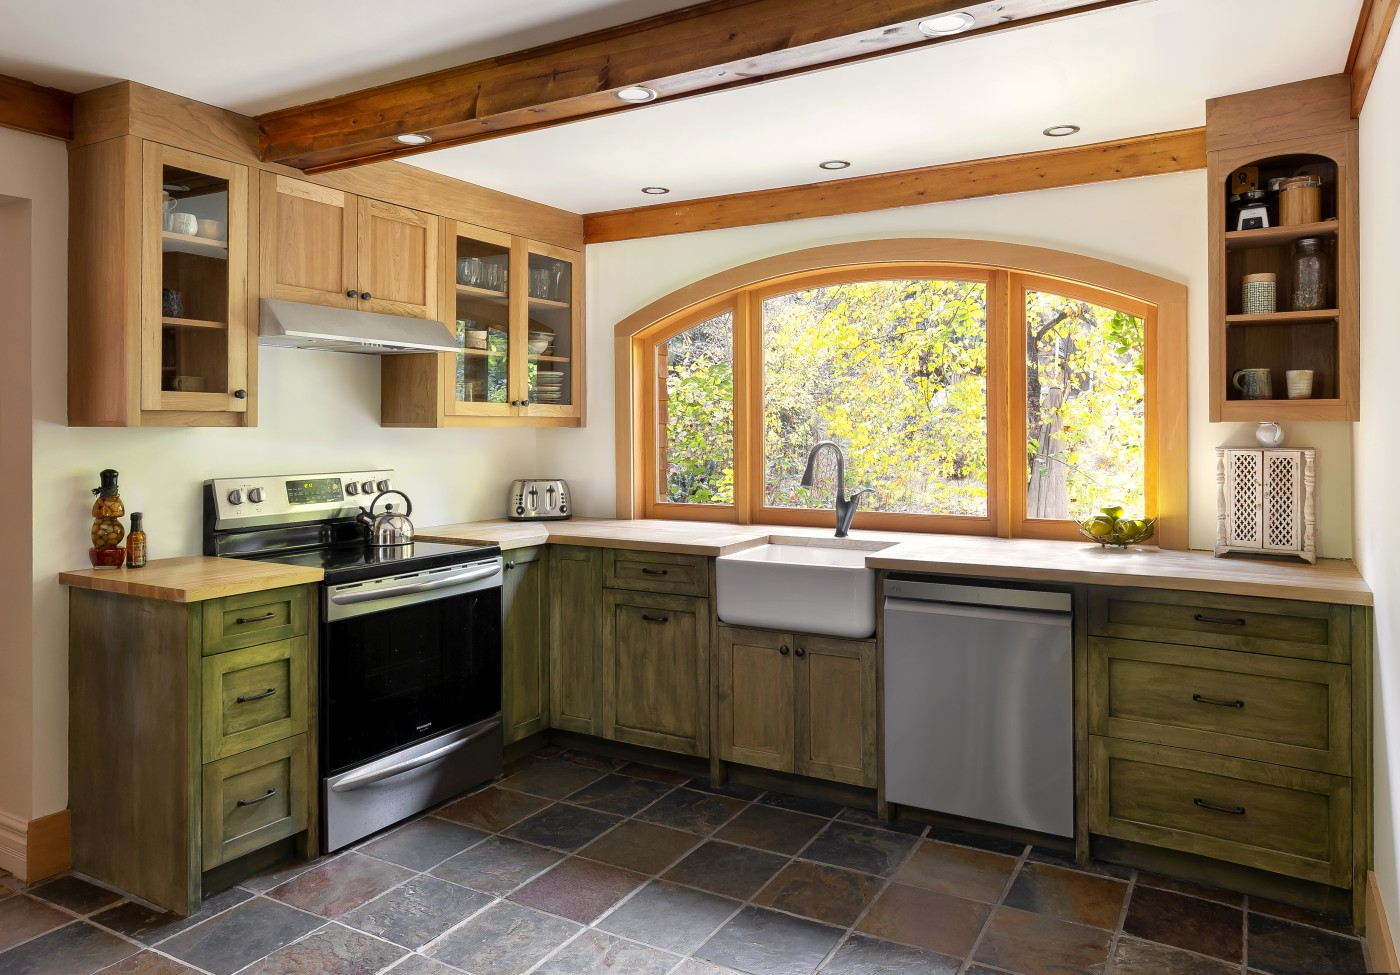 Eclectic Artists Kitchen